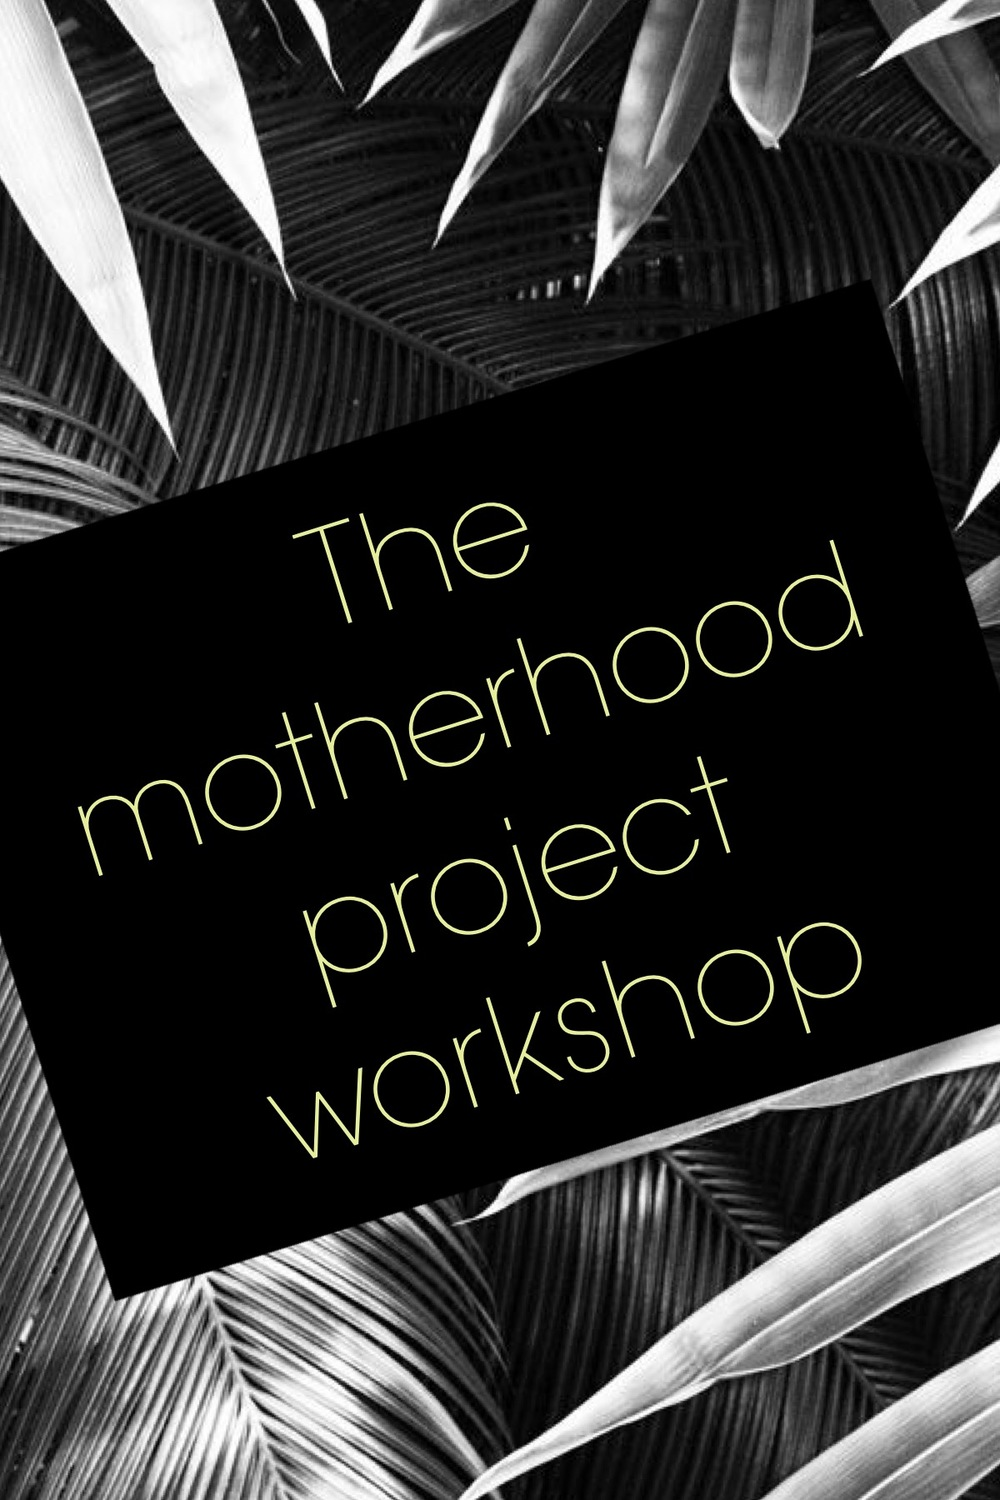 Flyer I created for the workshop. I also created a Facebook event to help get the word out to interested participants.